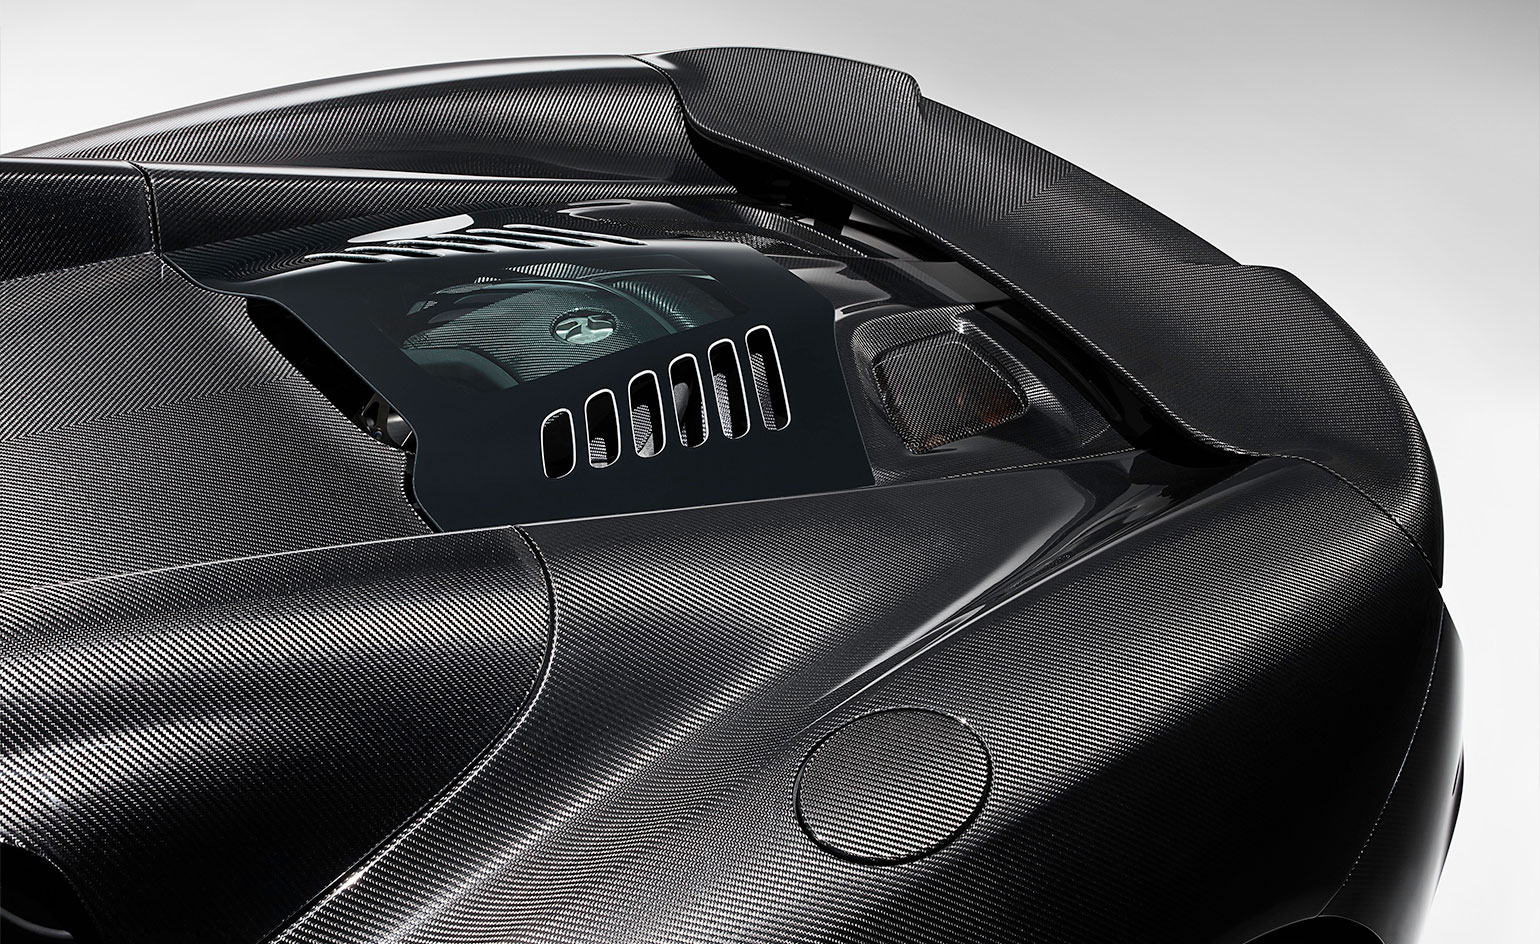 Tailored carbon-fibre helps to expose the functional material, not hide it